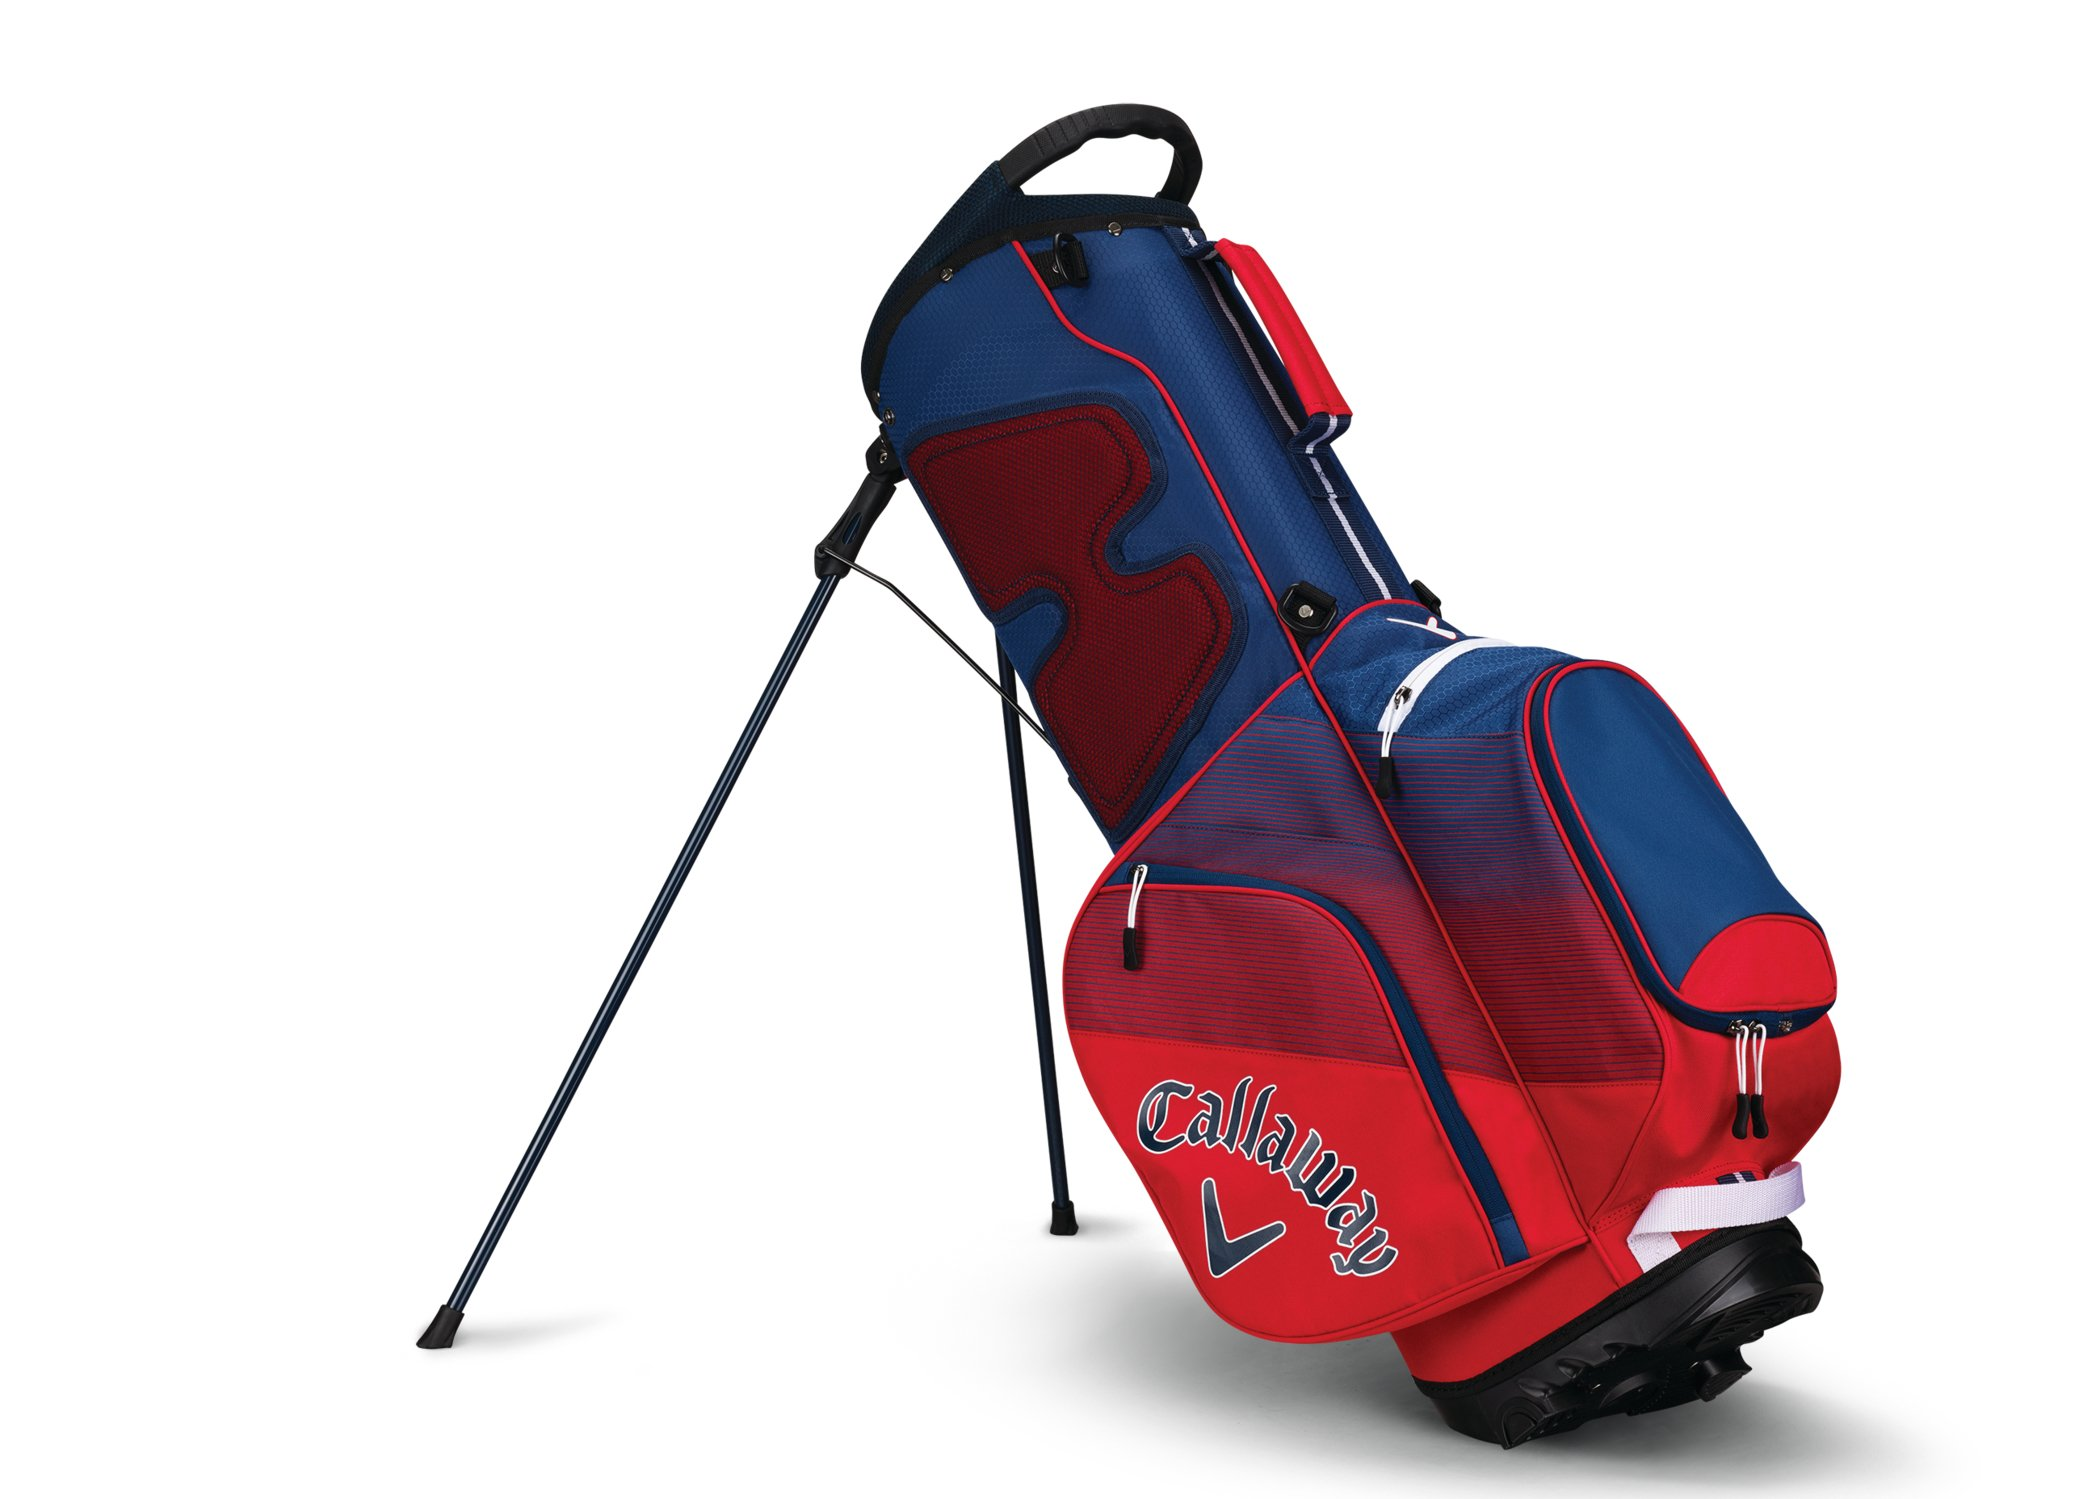 Callaway Golf 2018 Chev Stand Bag, Red/ Navy/ White